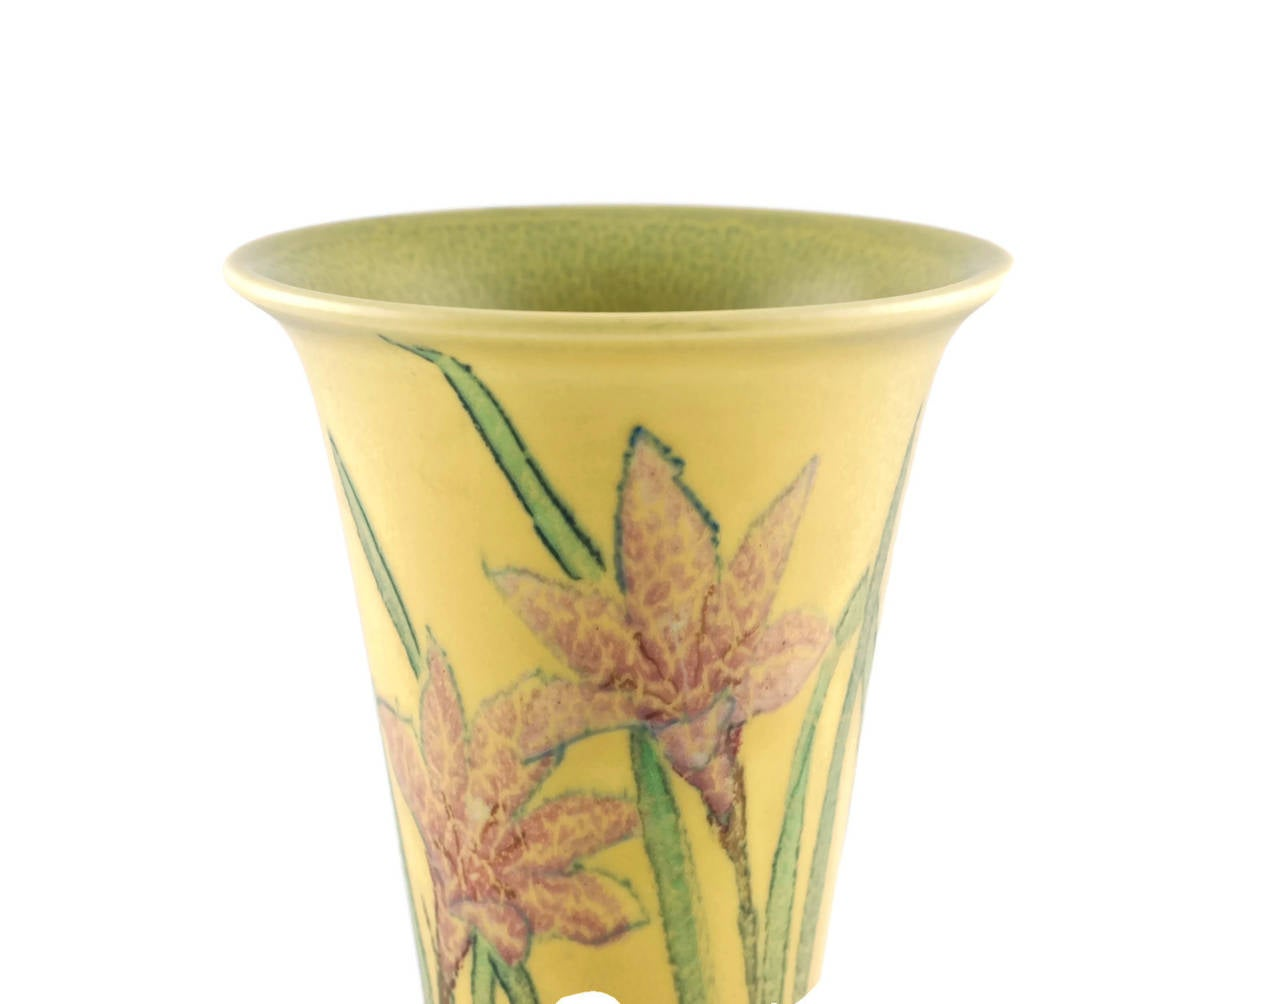 Kataro Shirayamadani Signed Rookwood Pottery Vase with Floral Motif In Excellent Condition For Sale In Cincinnati, OH